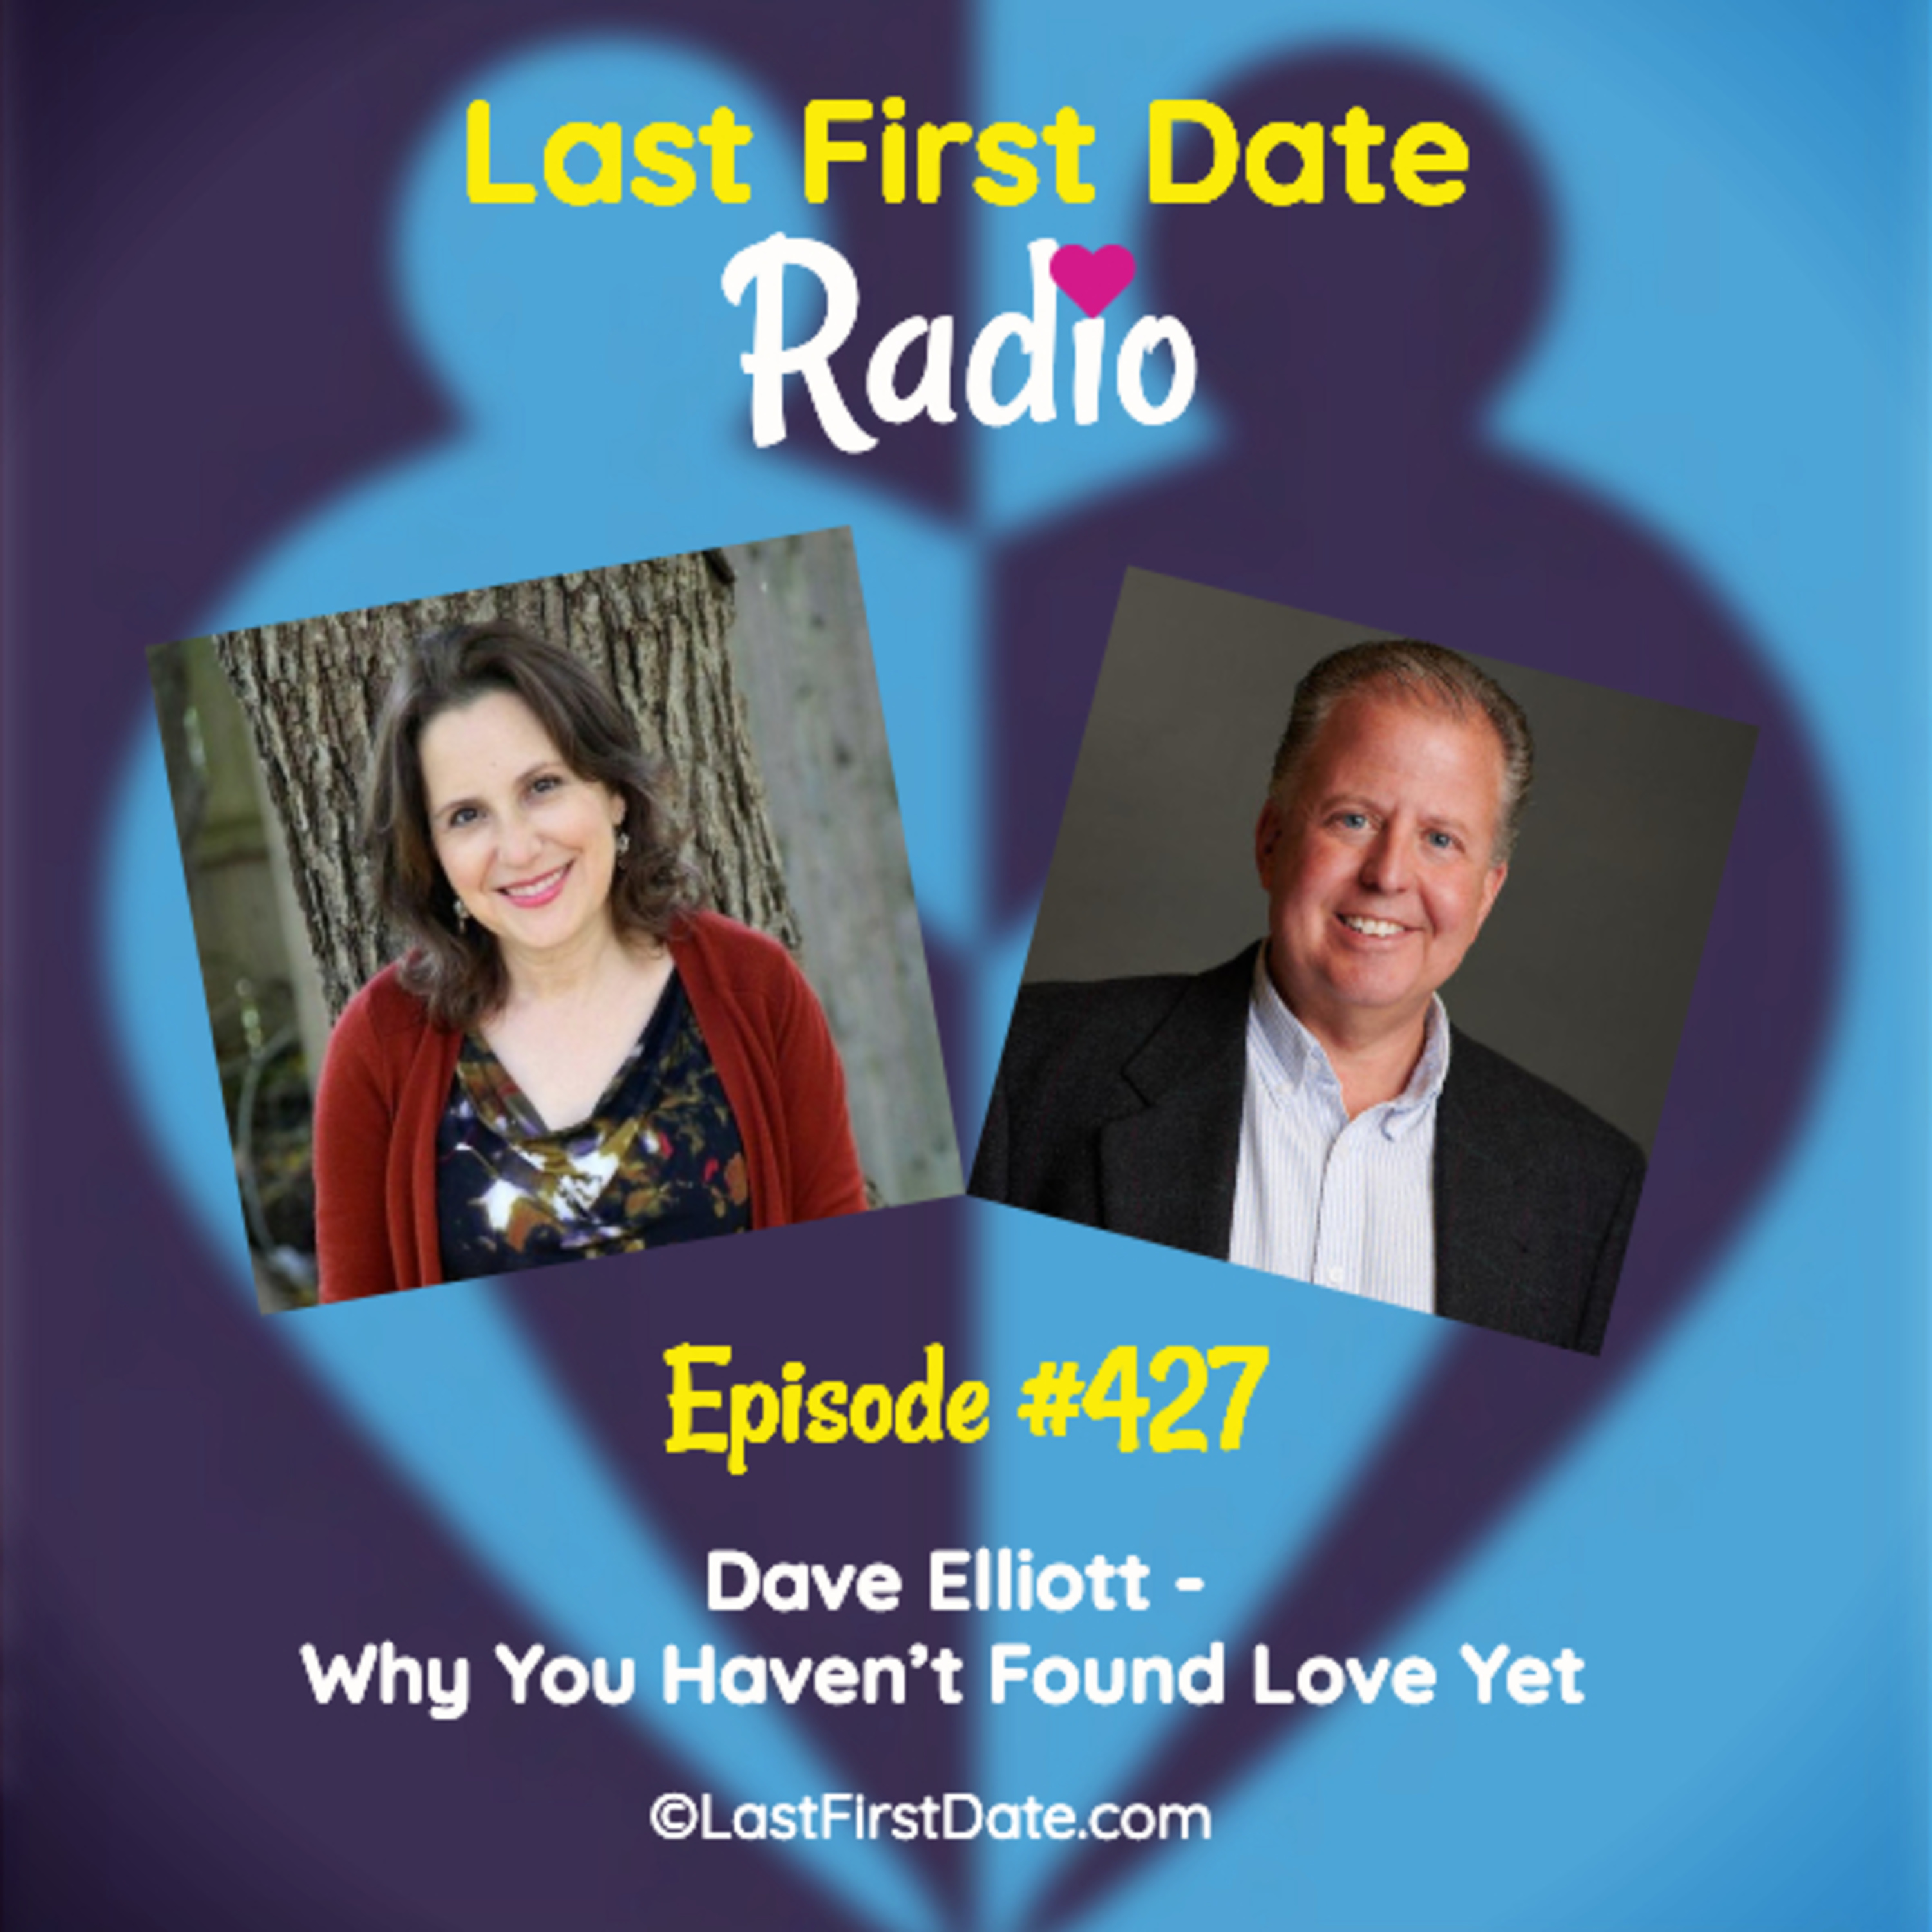 Last First Date Radio - EP 427: Dave Elliott - Why You Haven't Found Love Yet